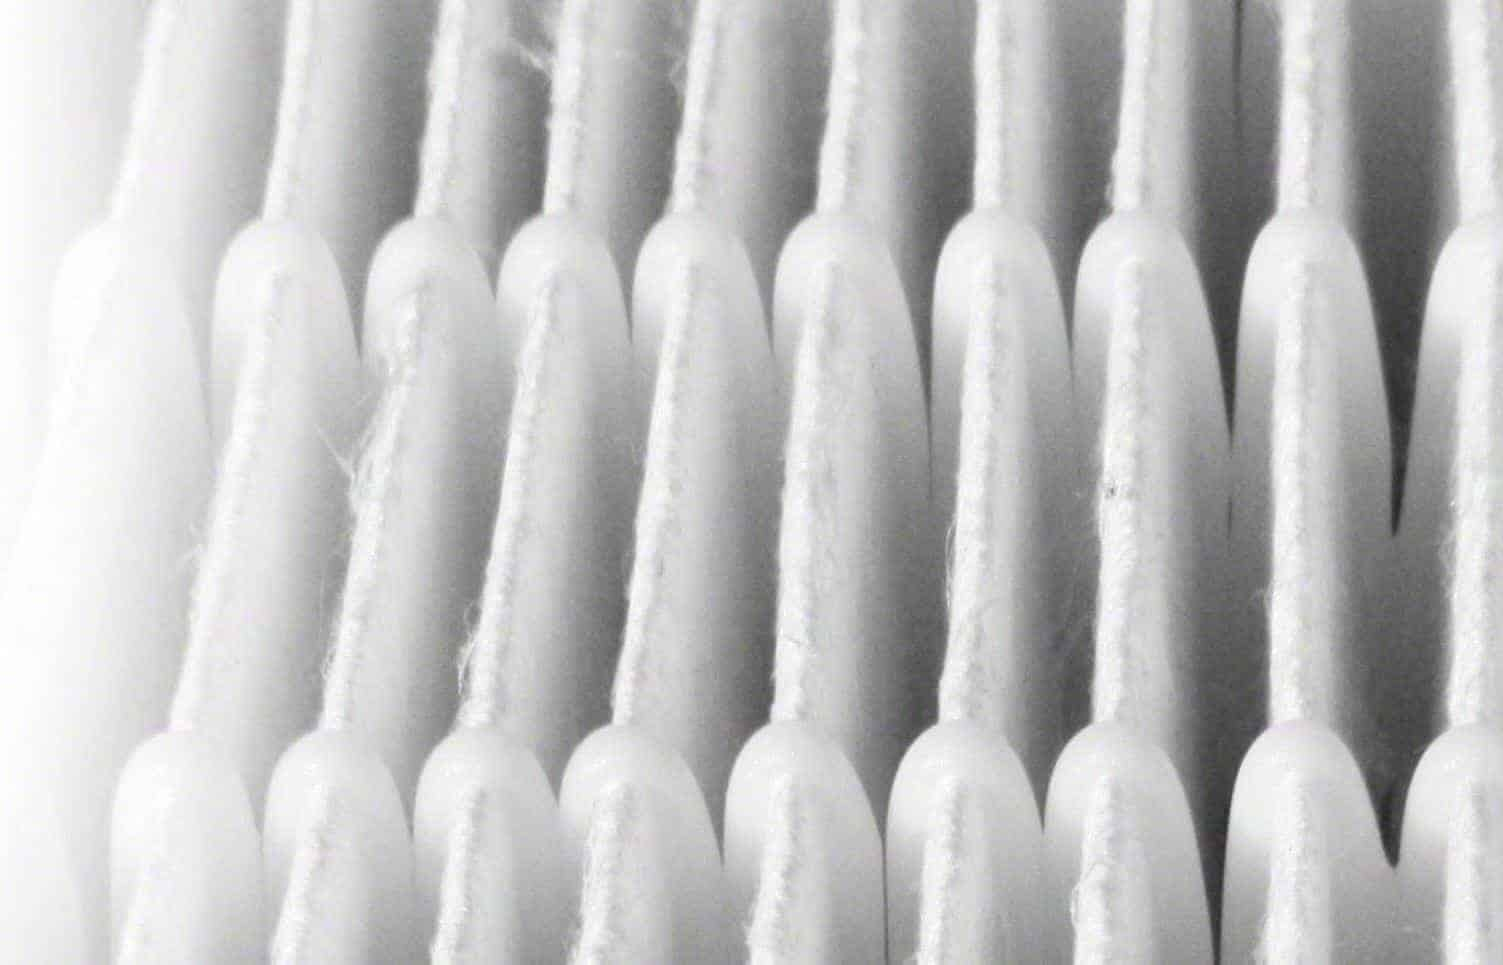 The pleated structure of the Nanomax filter